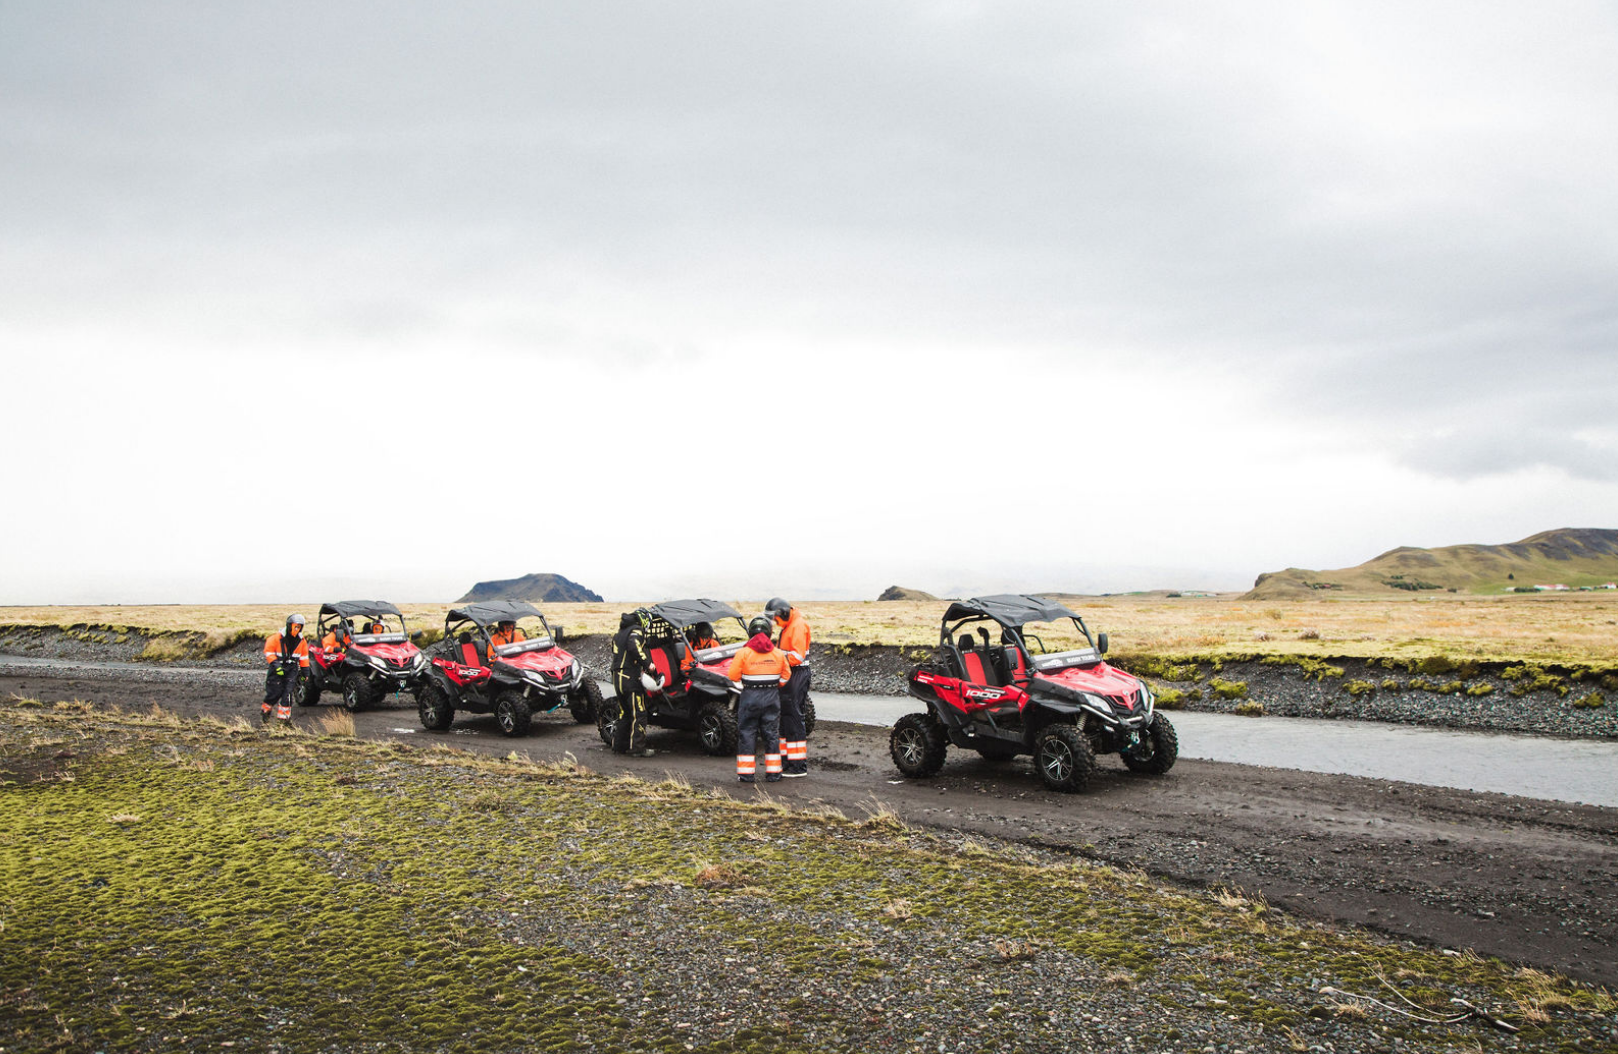 Exciting 1 Hour ATV Buggy Adventure through the Countryside with Transfer from Gljufrabui